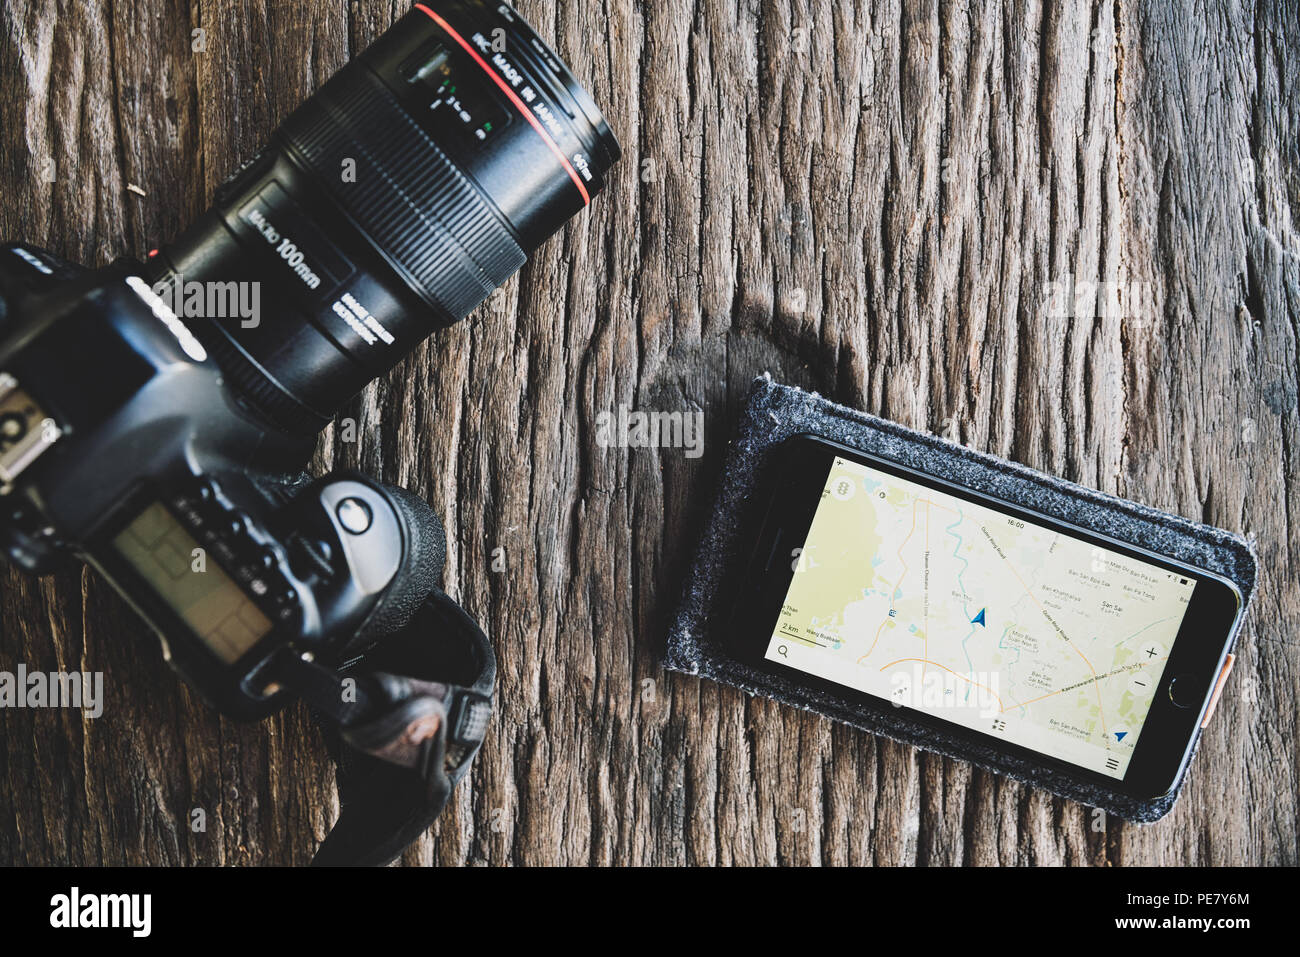 Top view identity photo equipment traveller tourist on wooden table, dslr camera and smartphone with map for planning route trip - Stock Image